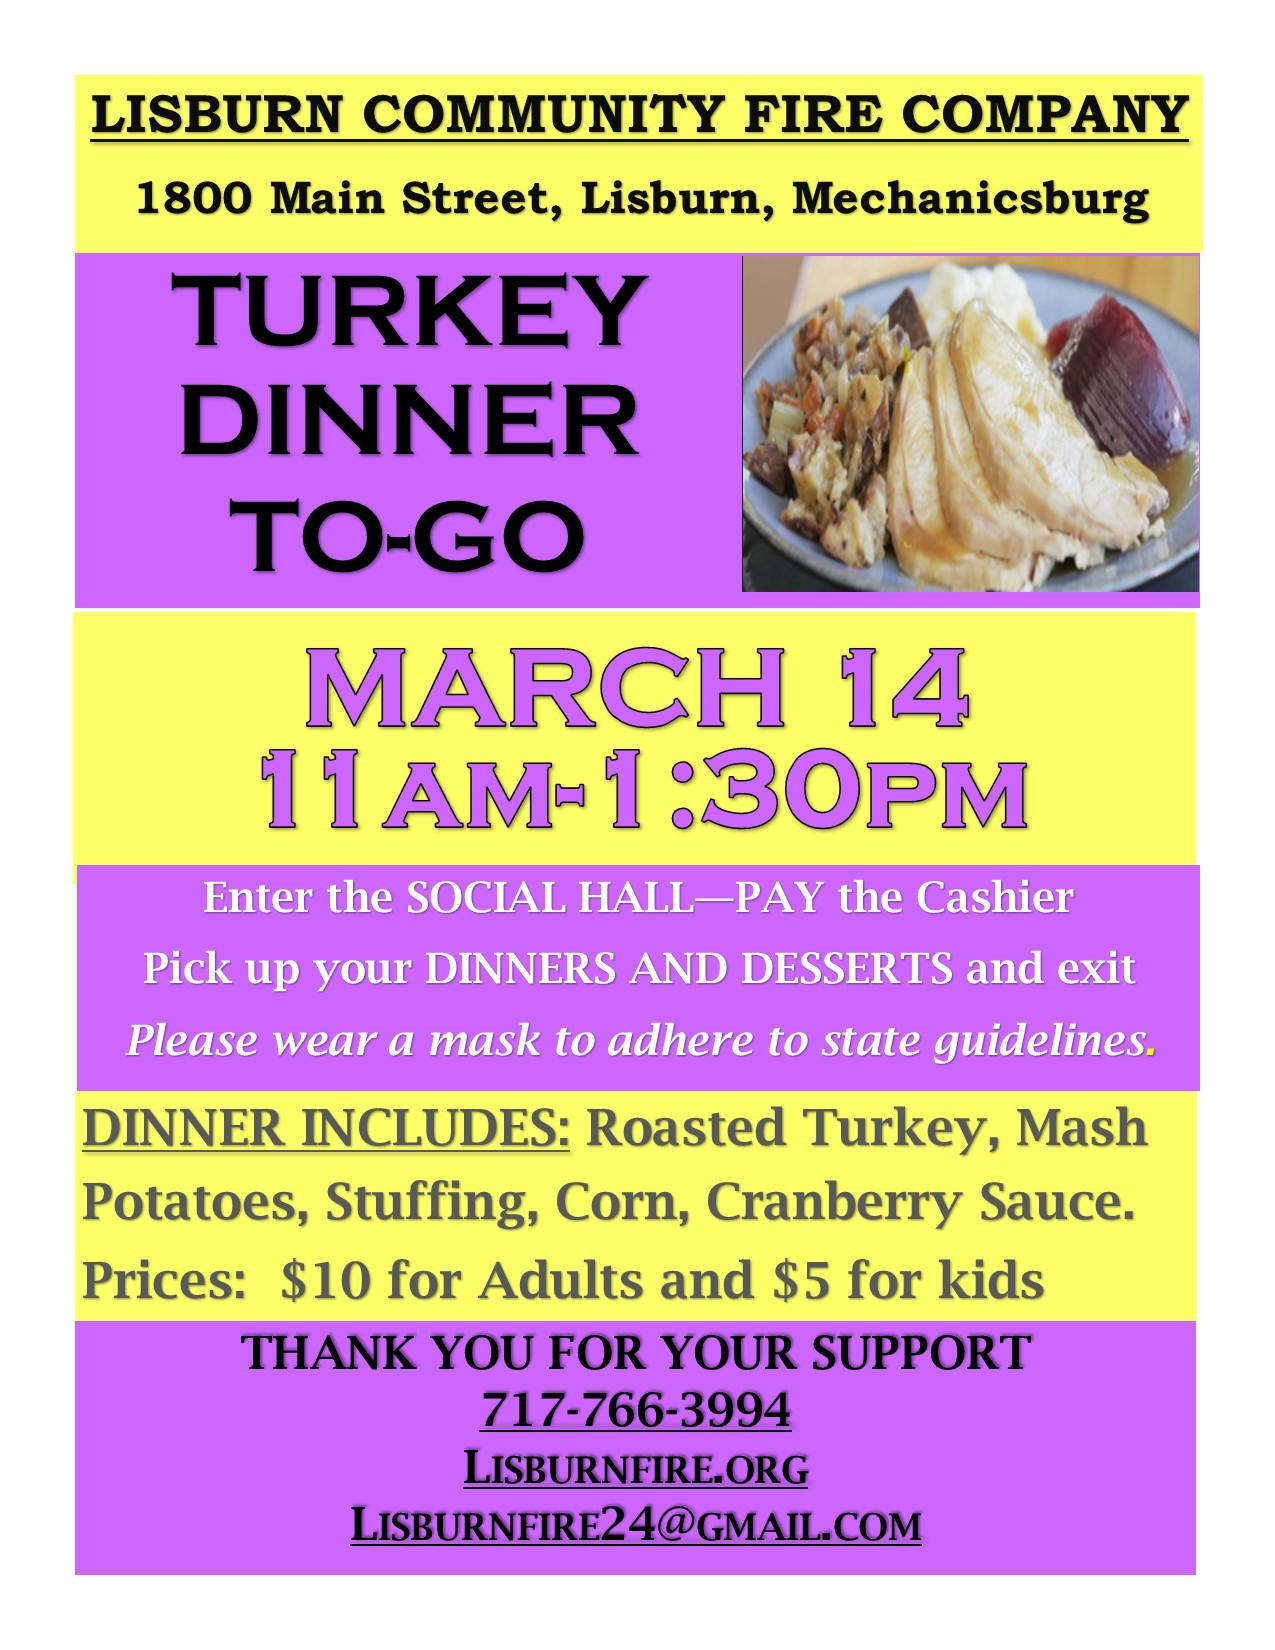 MARCH turkey dinner-to go 2021